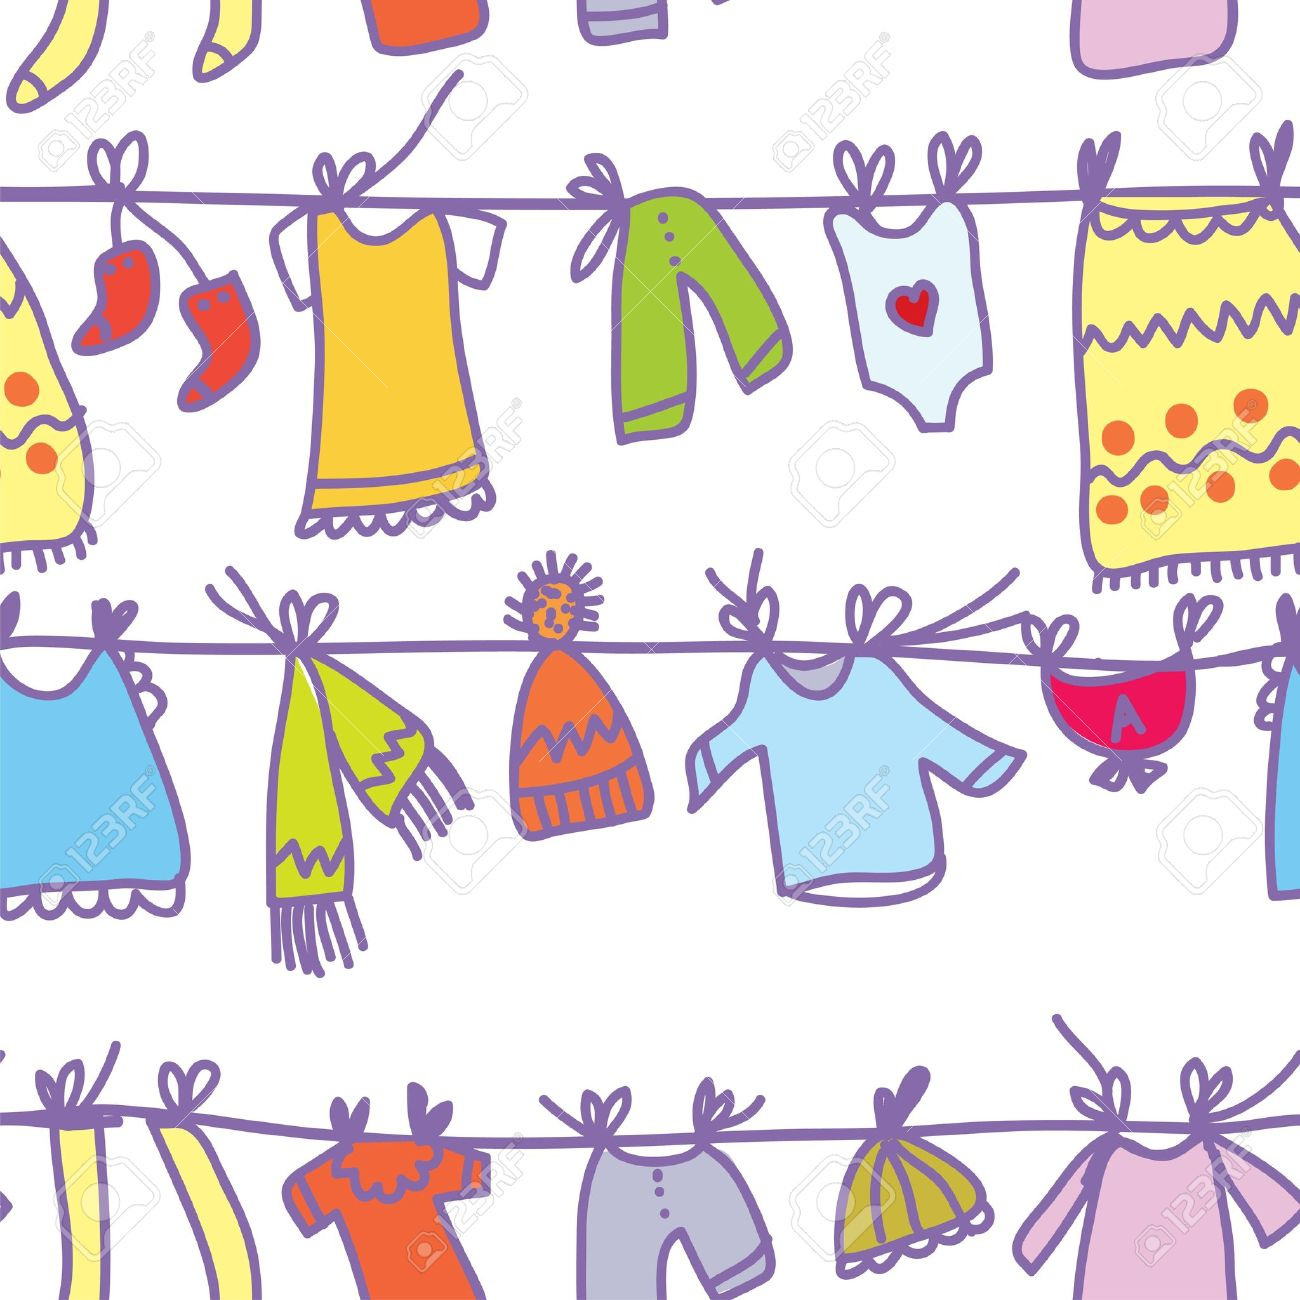 Baby clothes set seamless pattern - funny design - 16824435